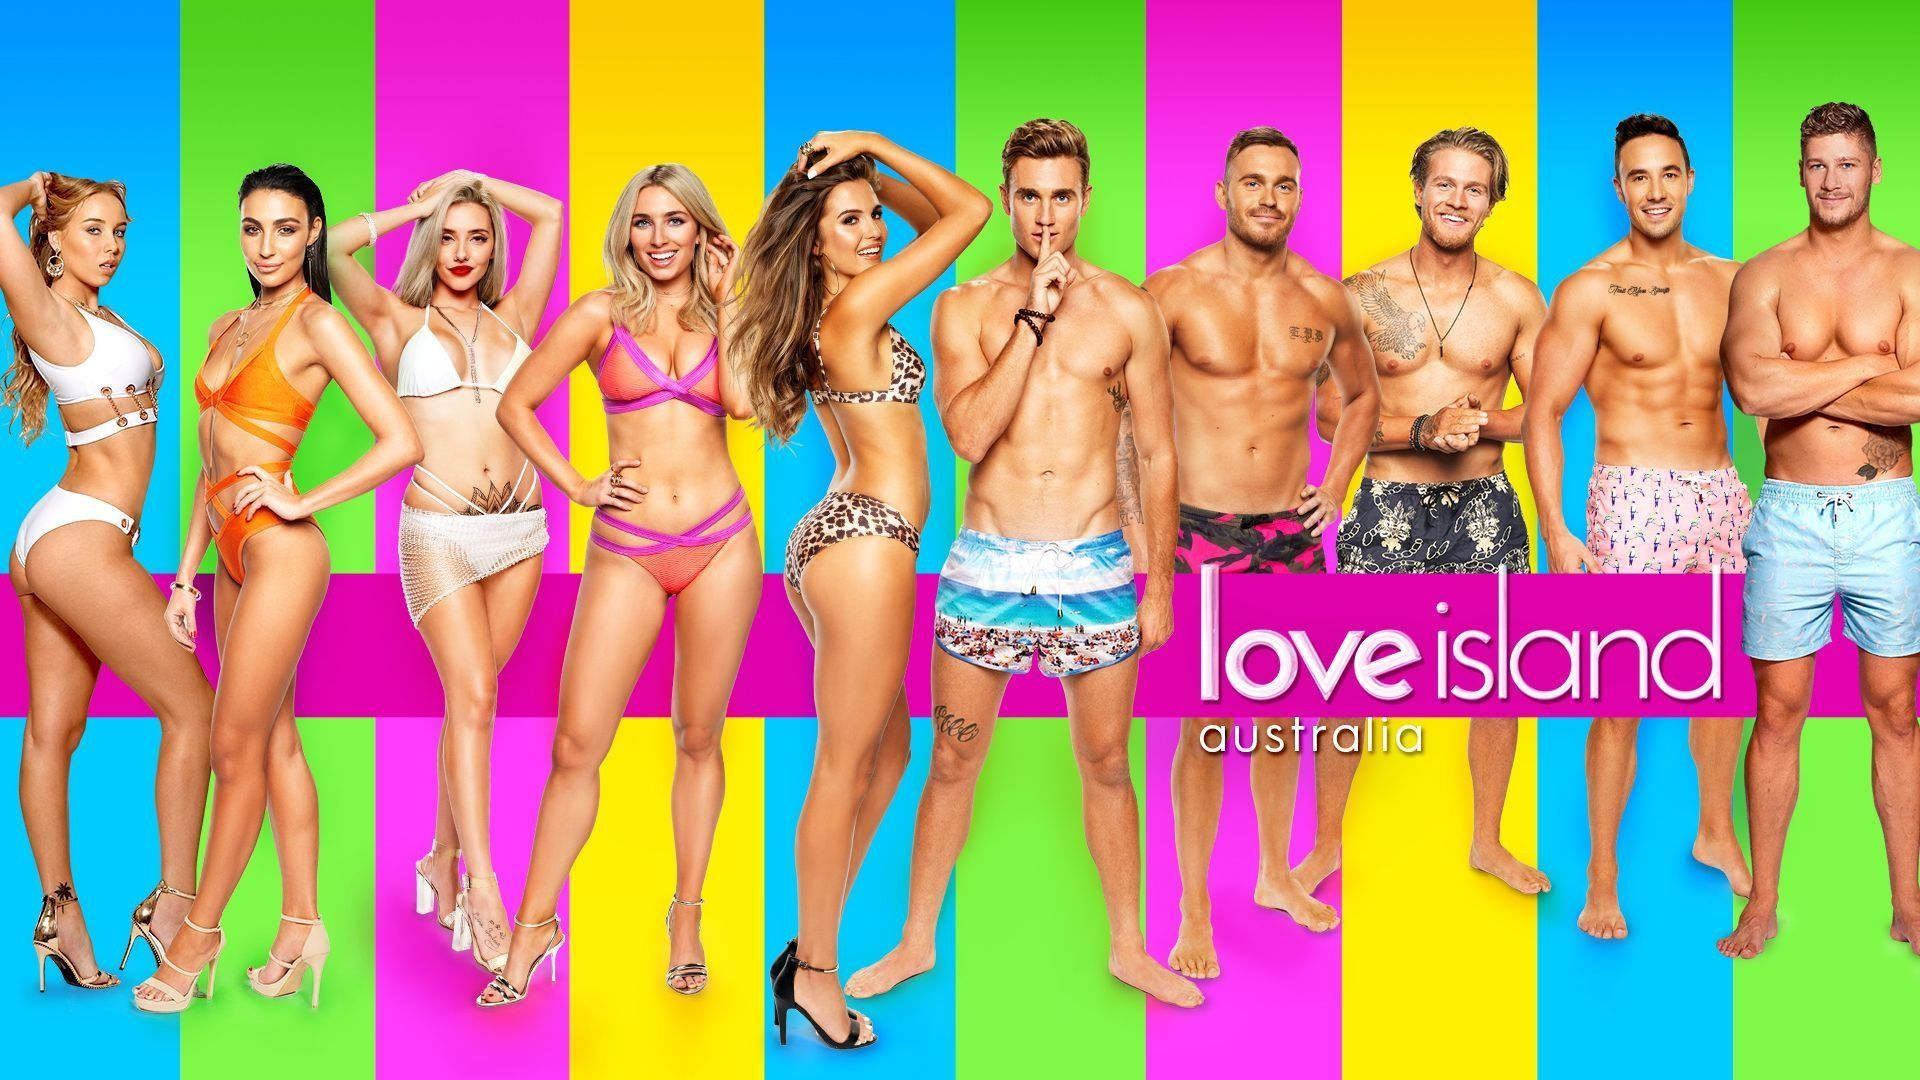 'Love Island Australia' Is Coming To The UK To Fill The Massive Hole In Our